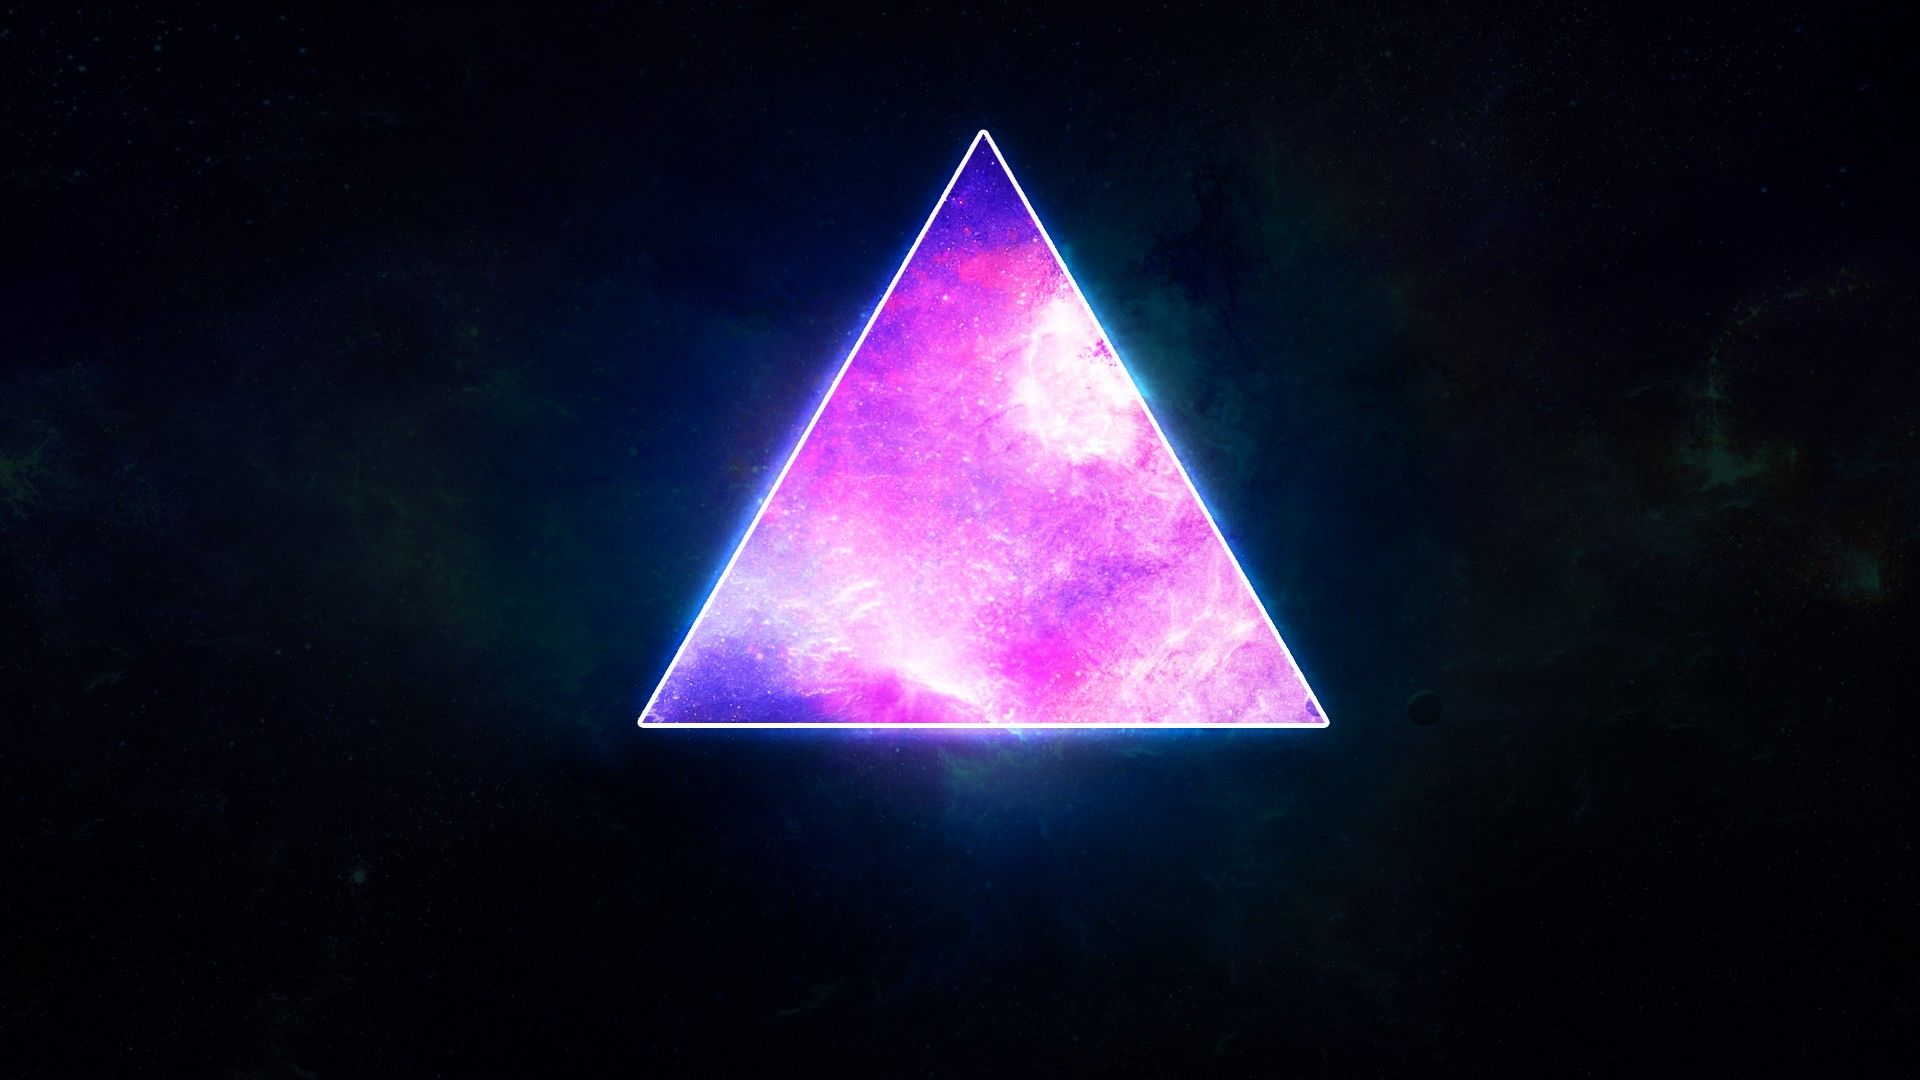 illuminati triangle wallpaper hd - photo #9